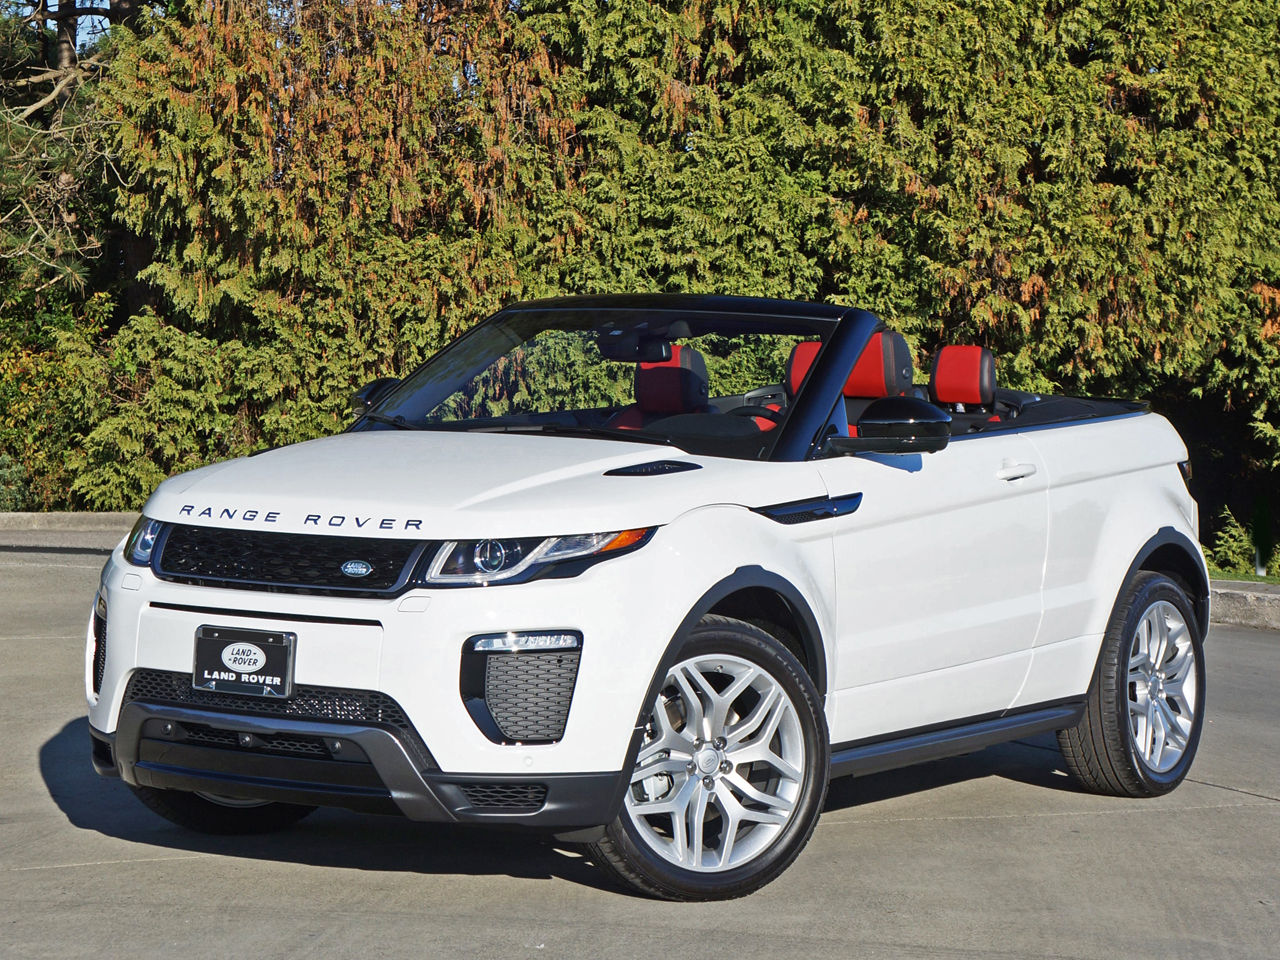 2017 range rover evoque convertible road test review. Black Bedroom Furniture Sets. Home Design Ideas